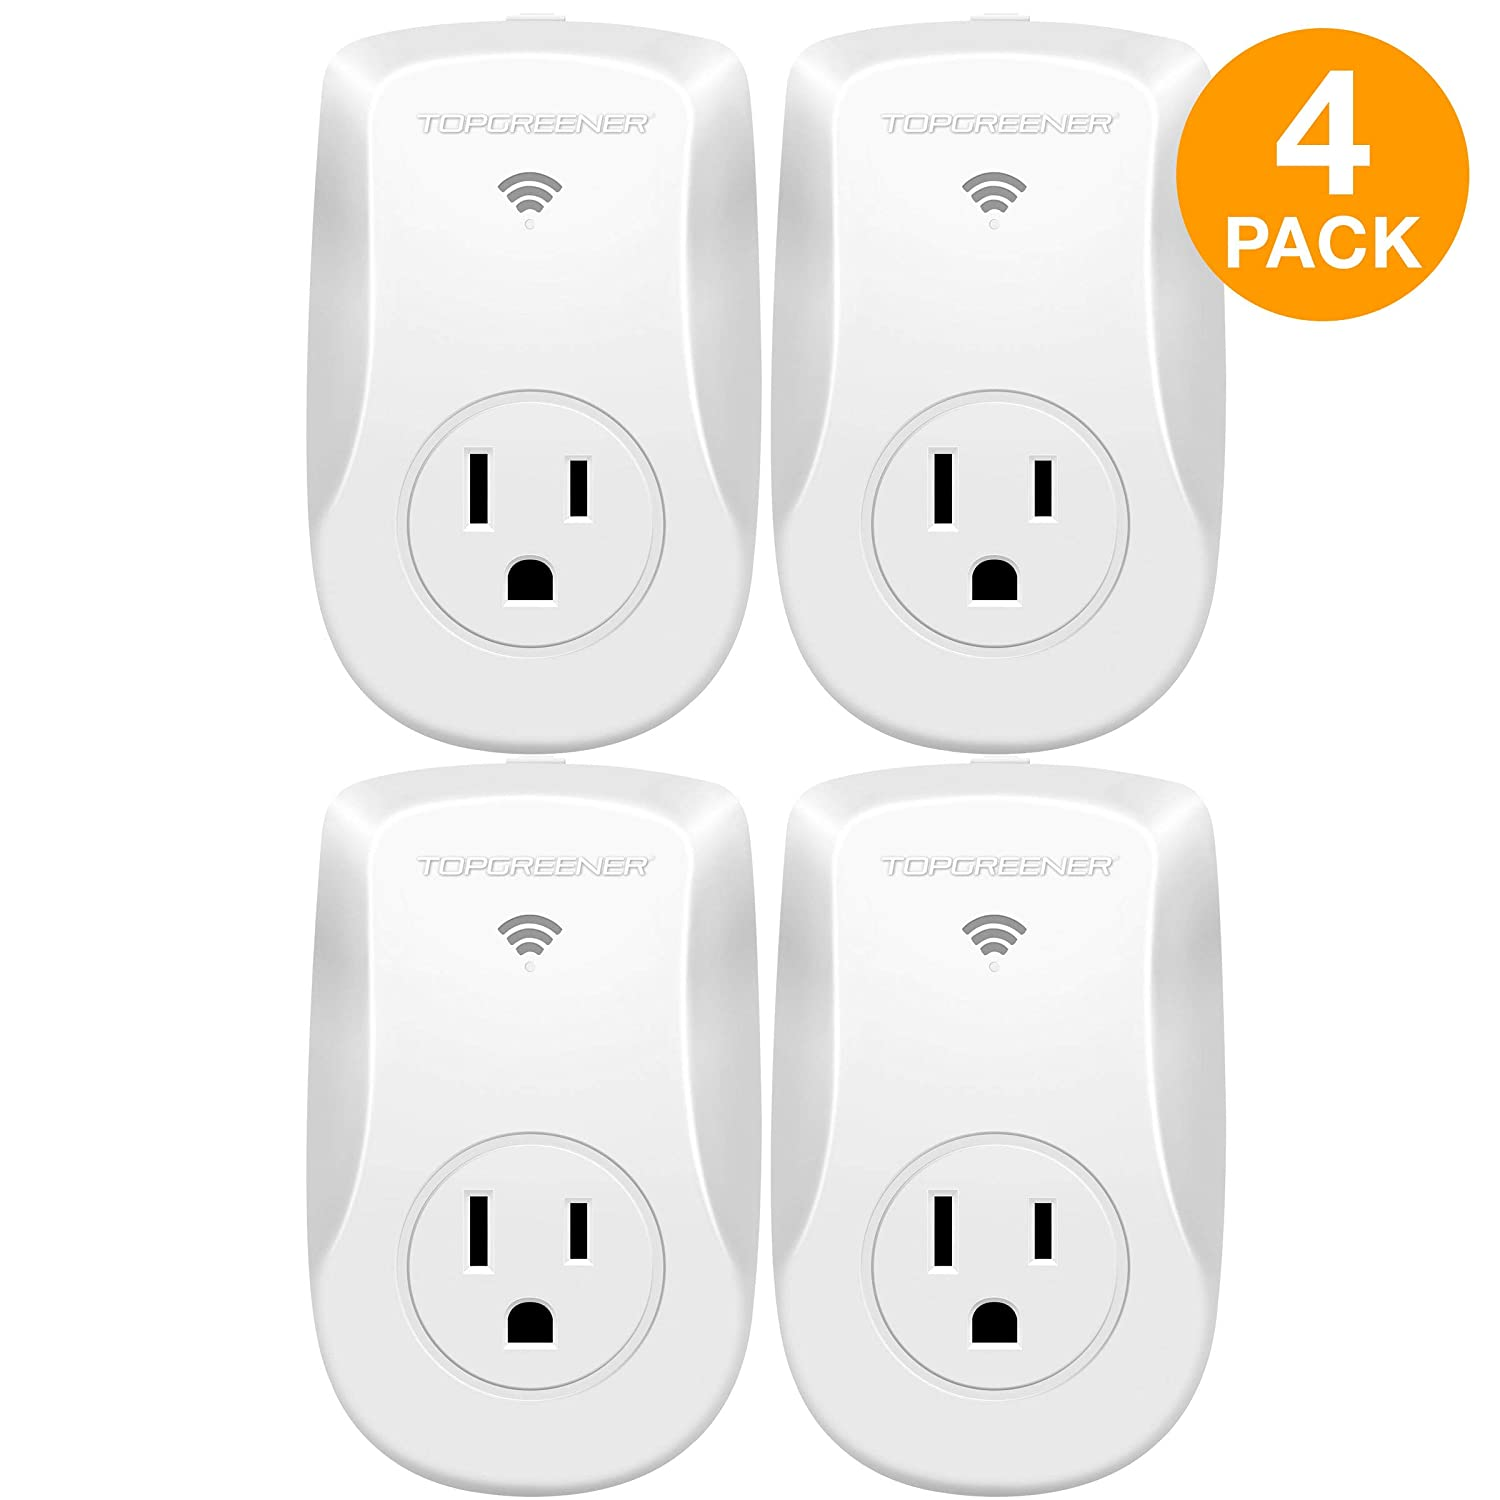 TOPGREENER Smart Wi-Fi Powerful Plug with Energy Monitoring, Smart Outlet, 15A, 1800W, No Hub Required, Works with Alexa and Google Assistant, 4 Pack